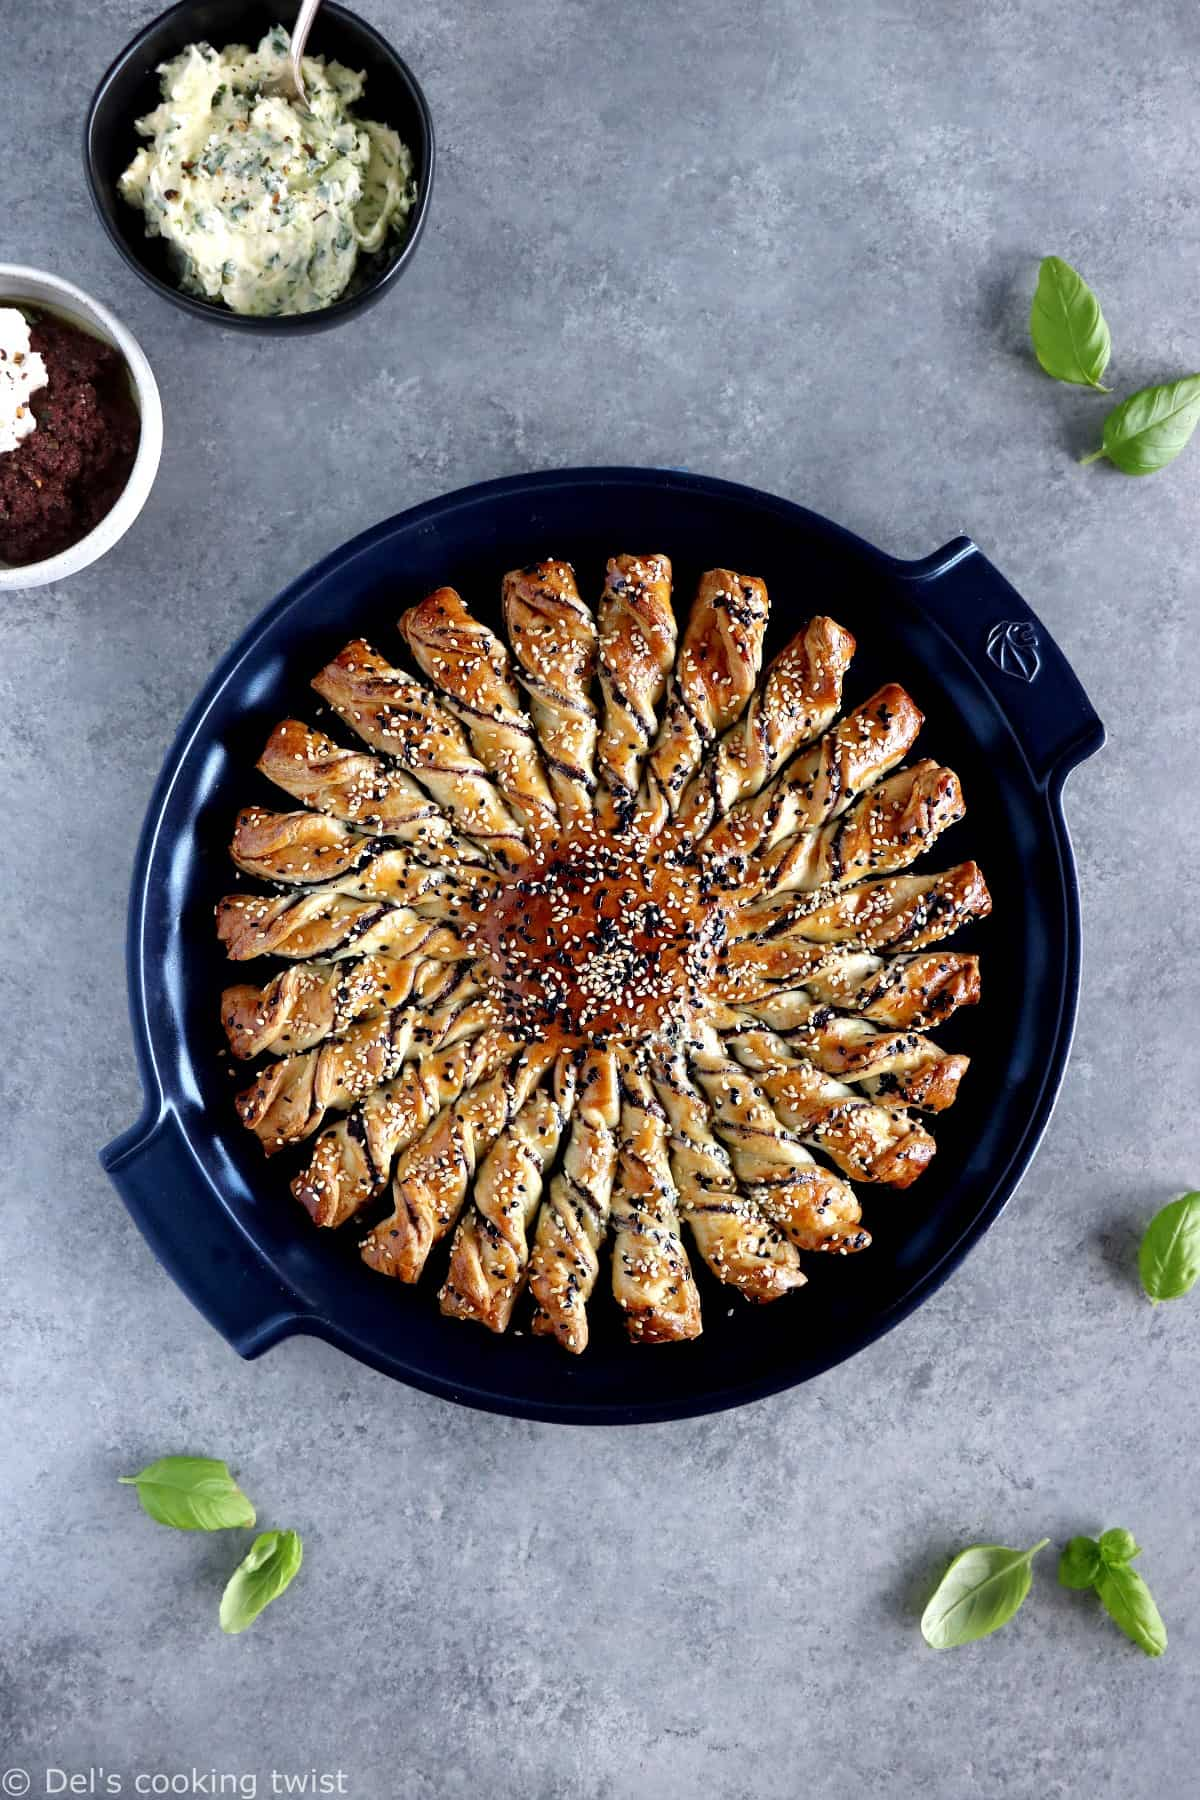 Tarte Soleil Appetizer: 5 Ways!Tarte Soleil Appetizer is a French-inspired pull-apart puff pastry that always makes the greatest impression among your guests. It comes here in 5 easy ways and different fillings, so you never run out of options!